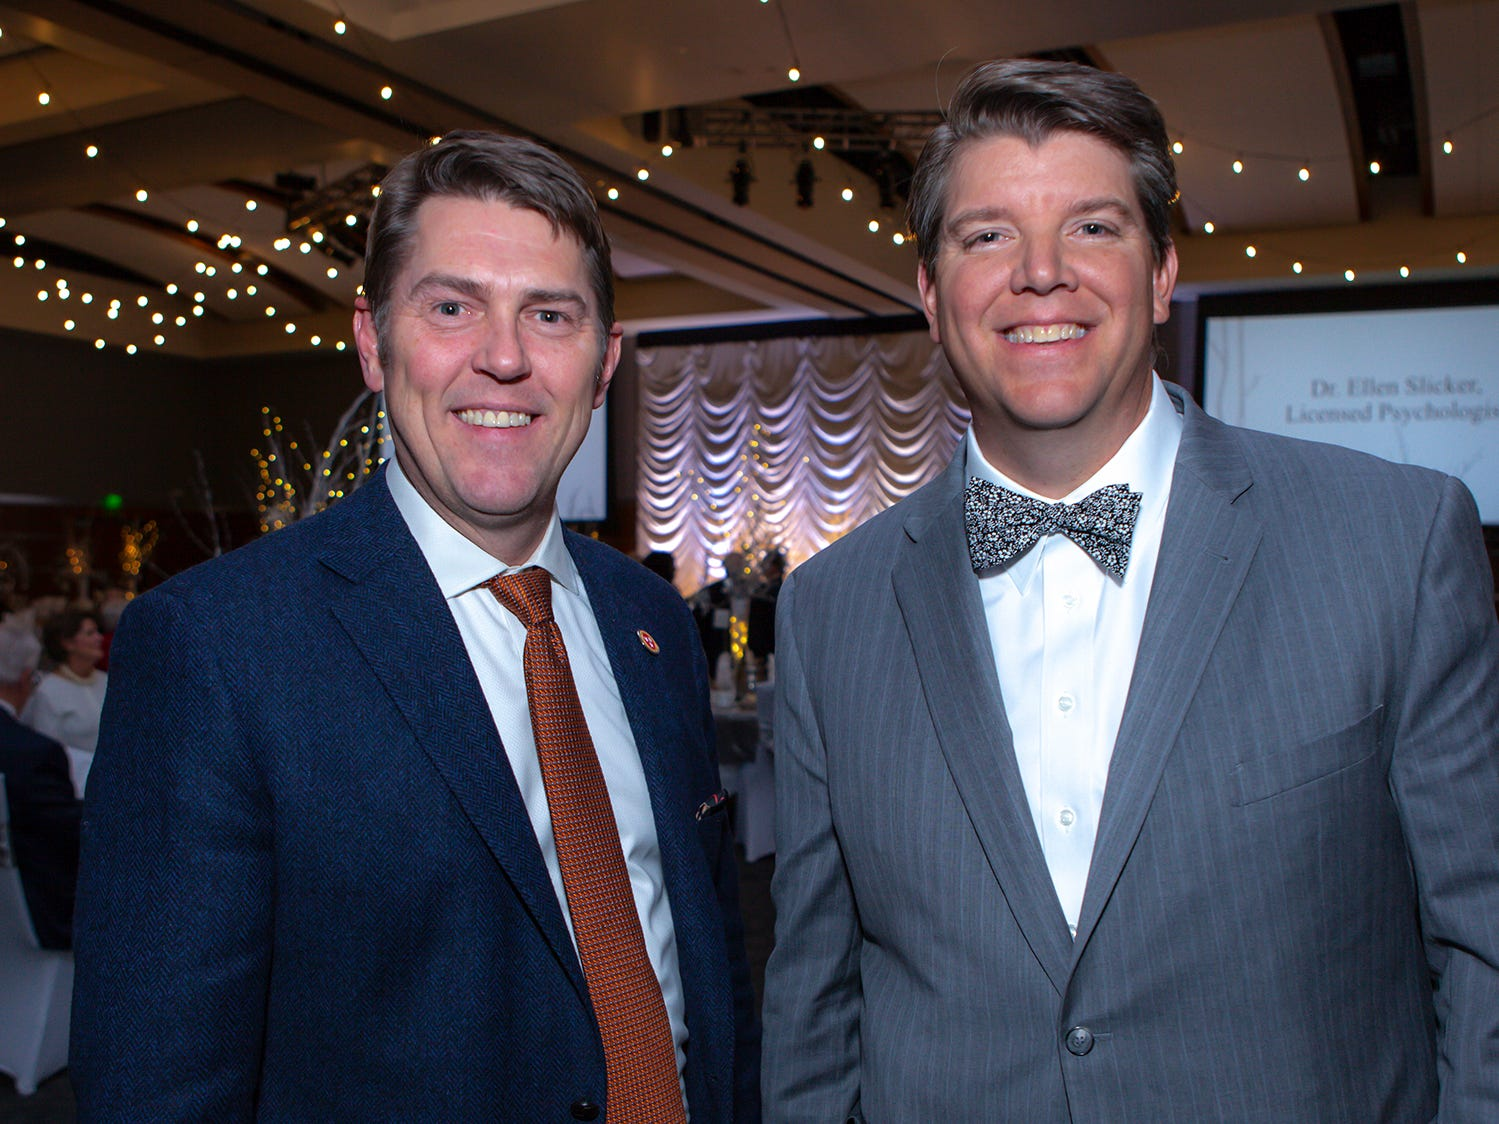 State Rep. Shane Reeves the Hon. Barry Tidwell at the 2019 Excellence in Education Gala, hosted by the City Schools Foundation on Friday, Jan. 25, 2019 at Stones River Country Club in Murfreesboro.